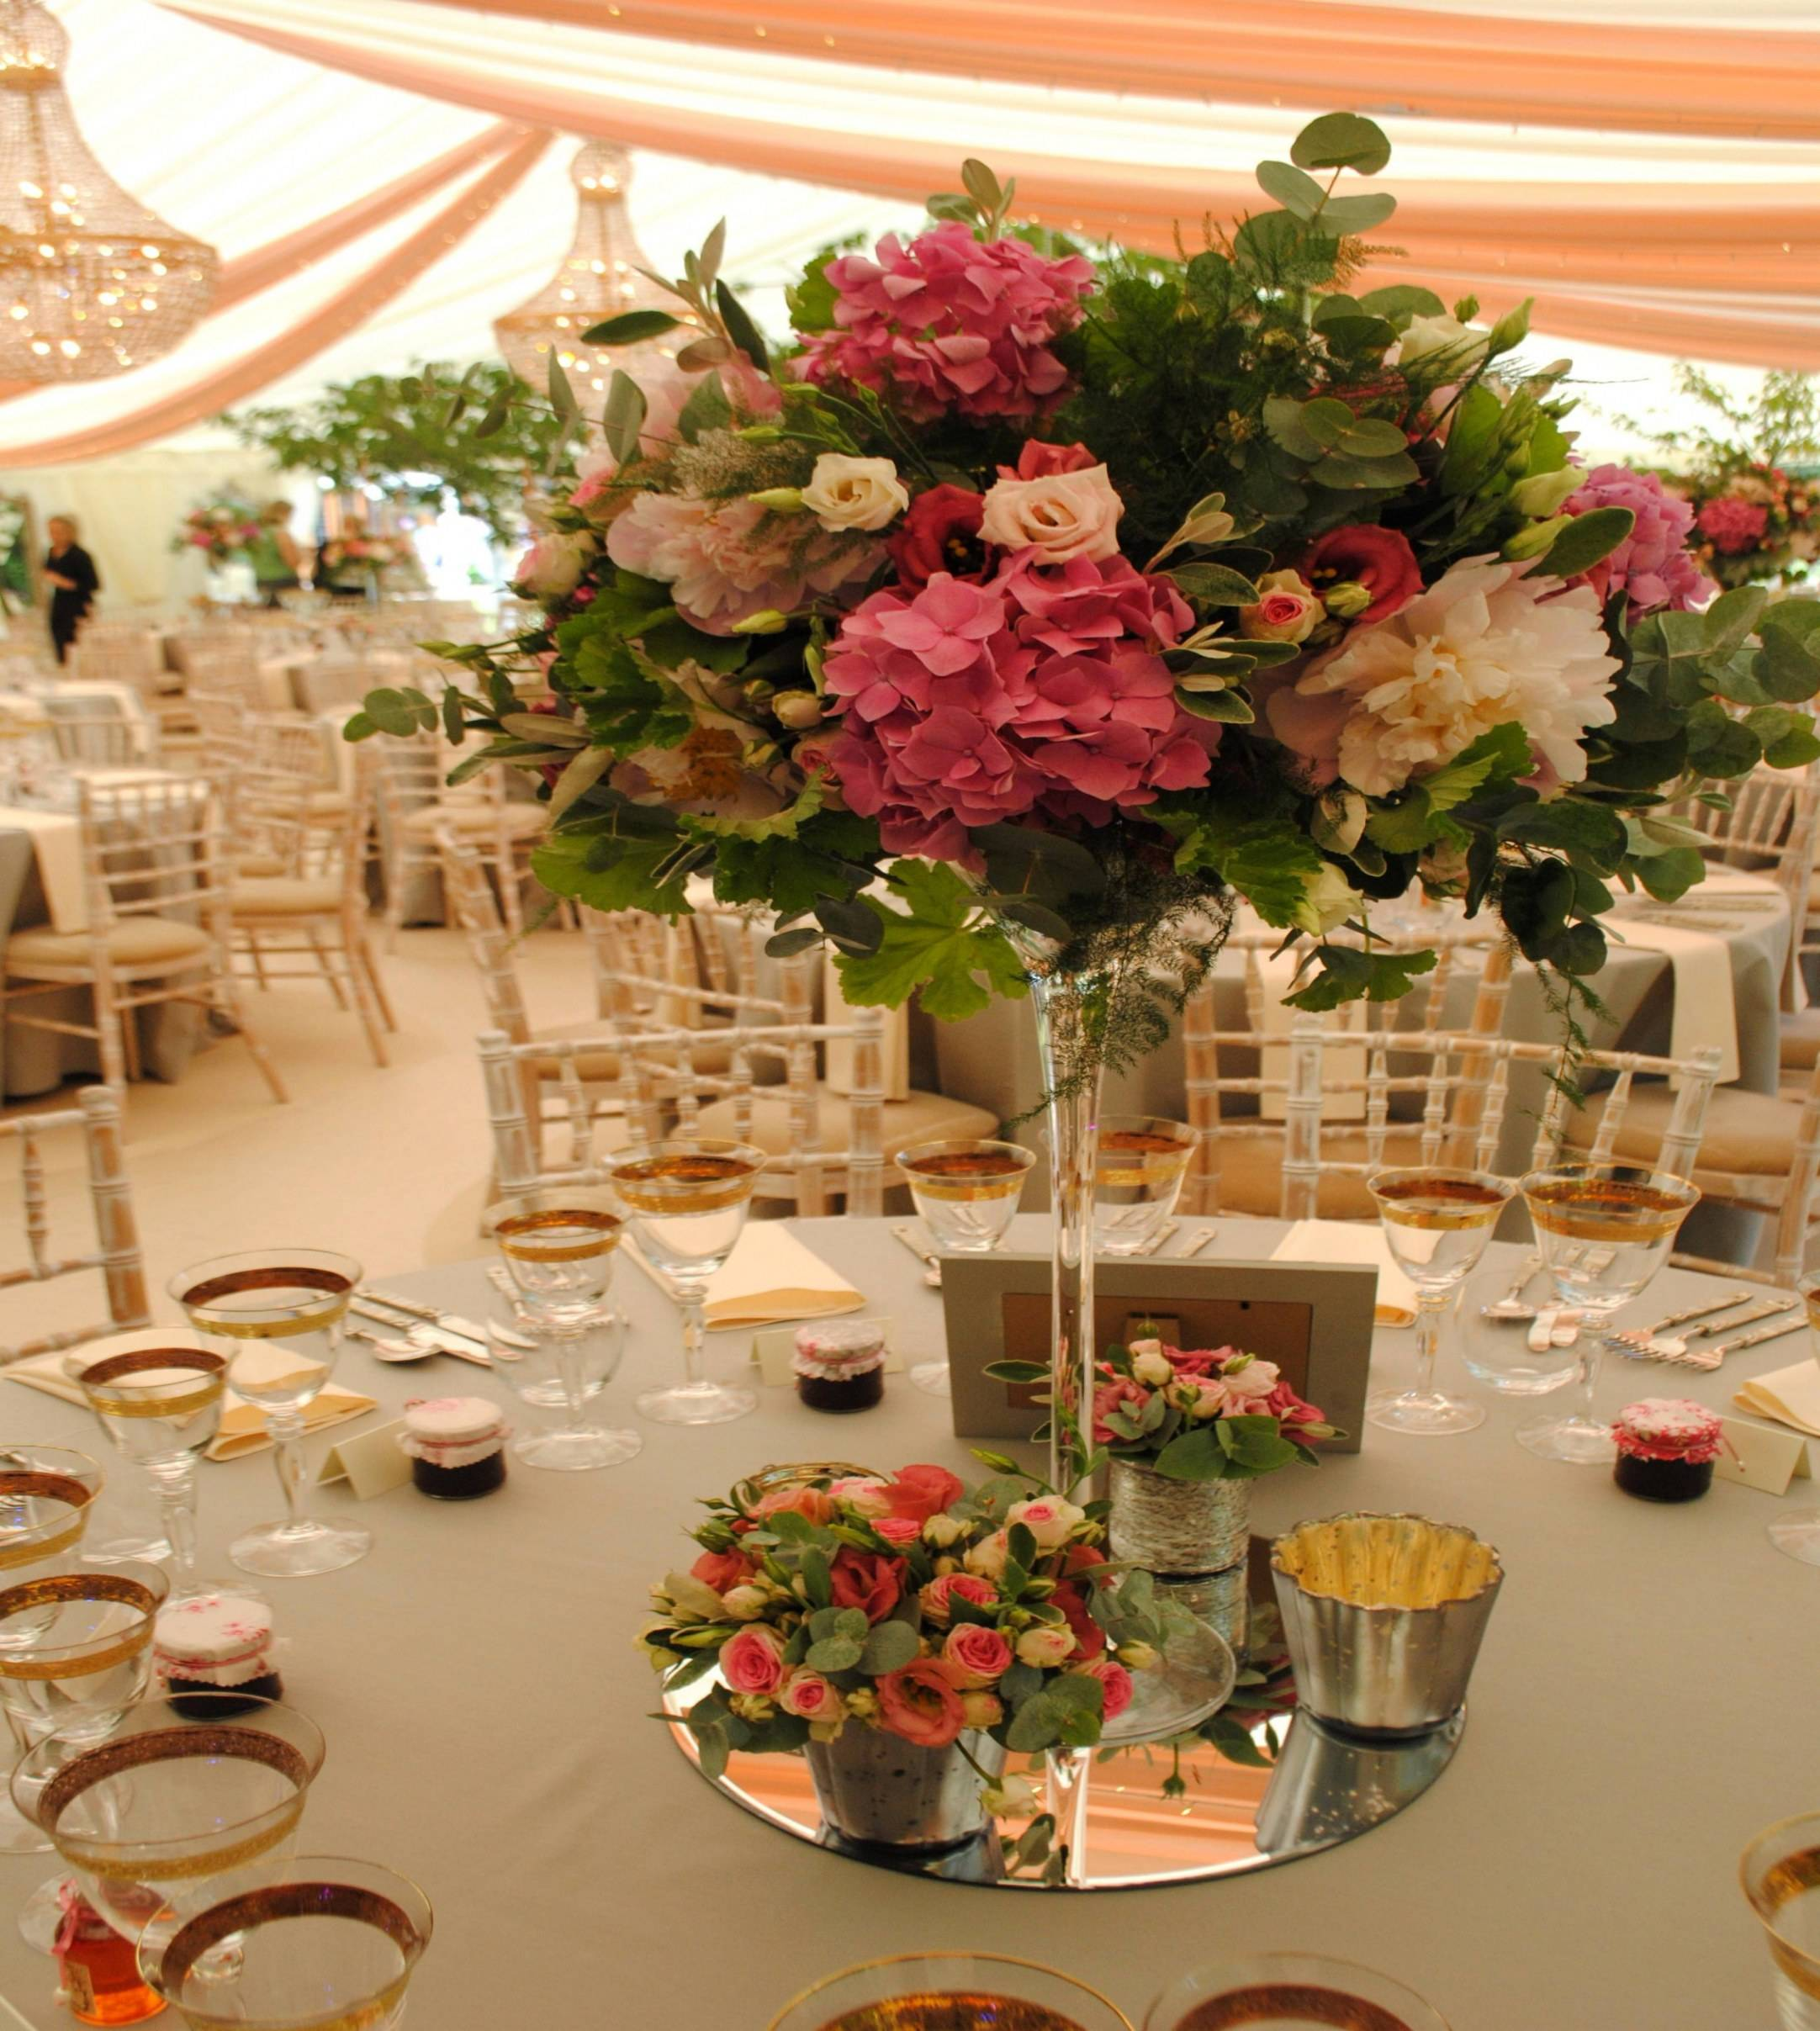 wedding table decorations christmas wedding centerpiece luxe millionnaire of wedding table decorations 1